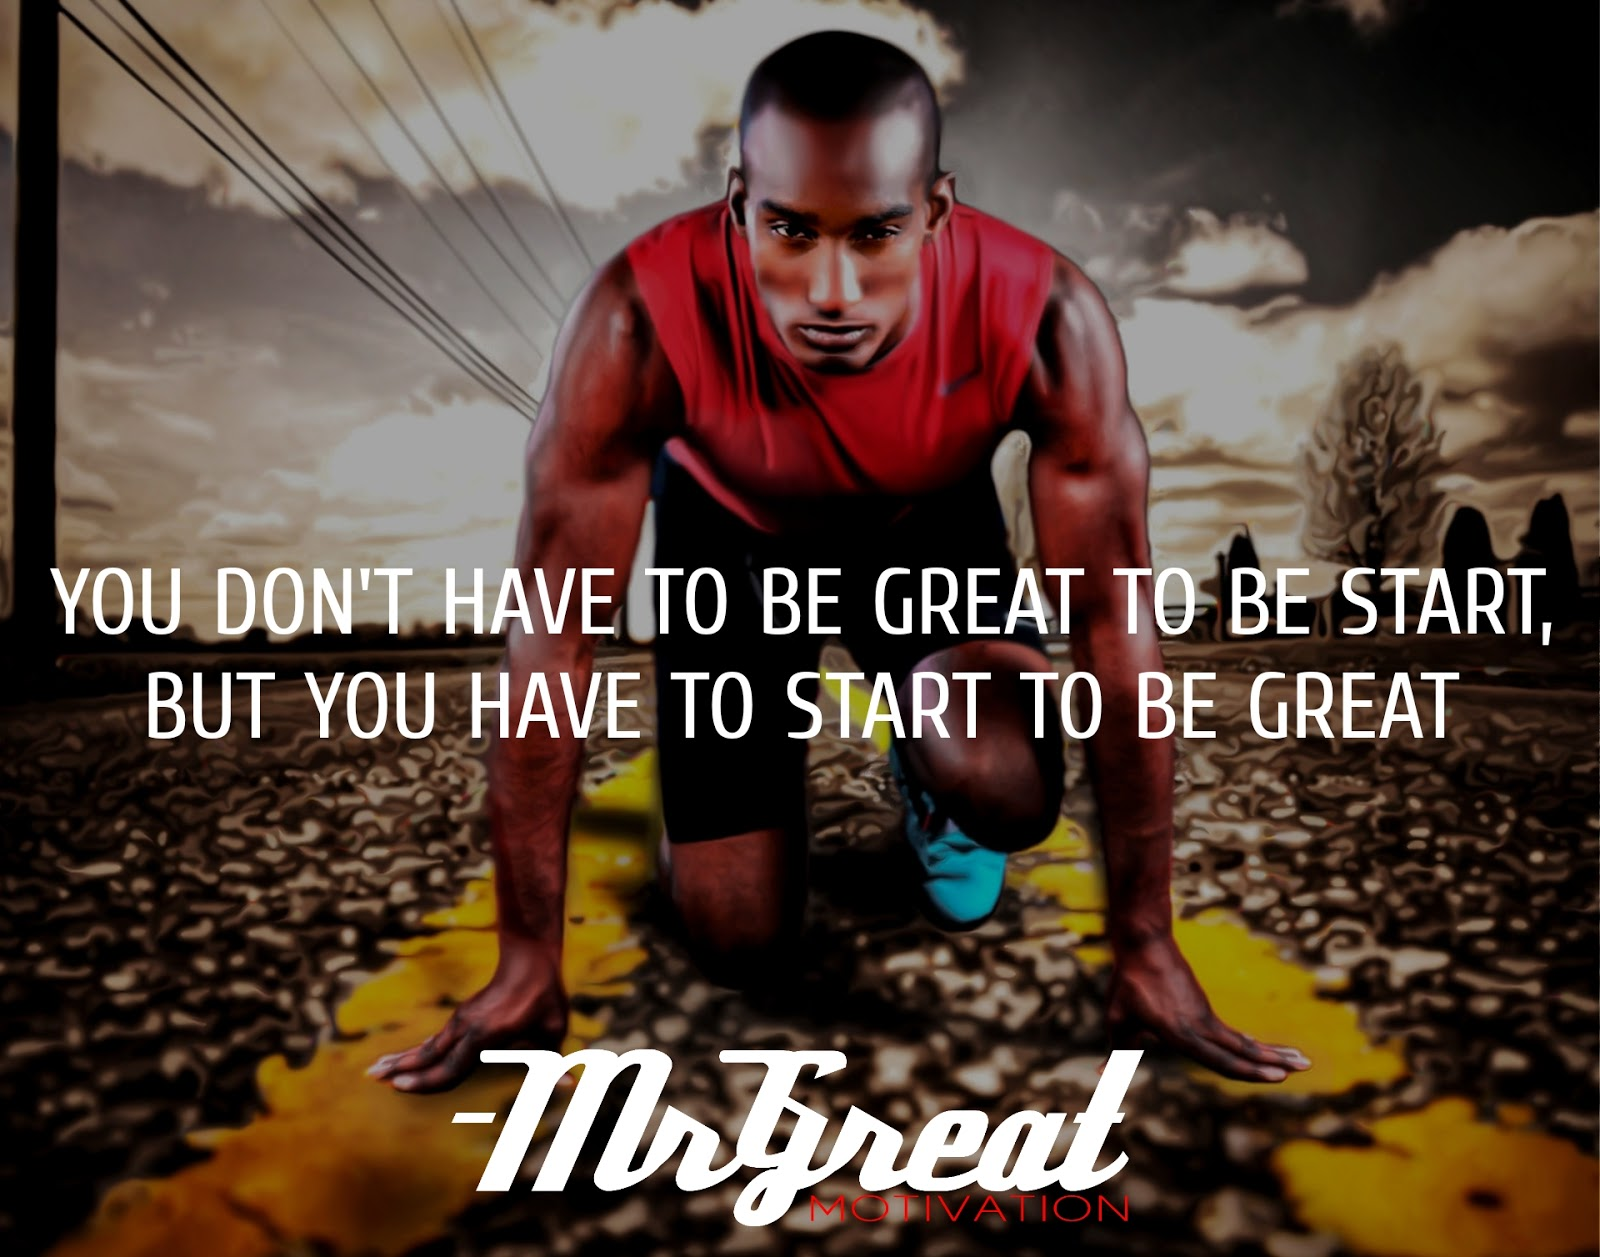 YOU DON'T HAVE TO BE GREAT TO START, BUT YOU HAVE TO START TO BE GREAT